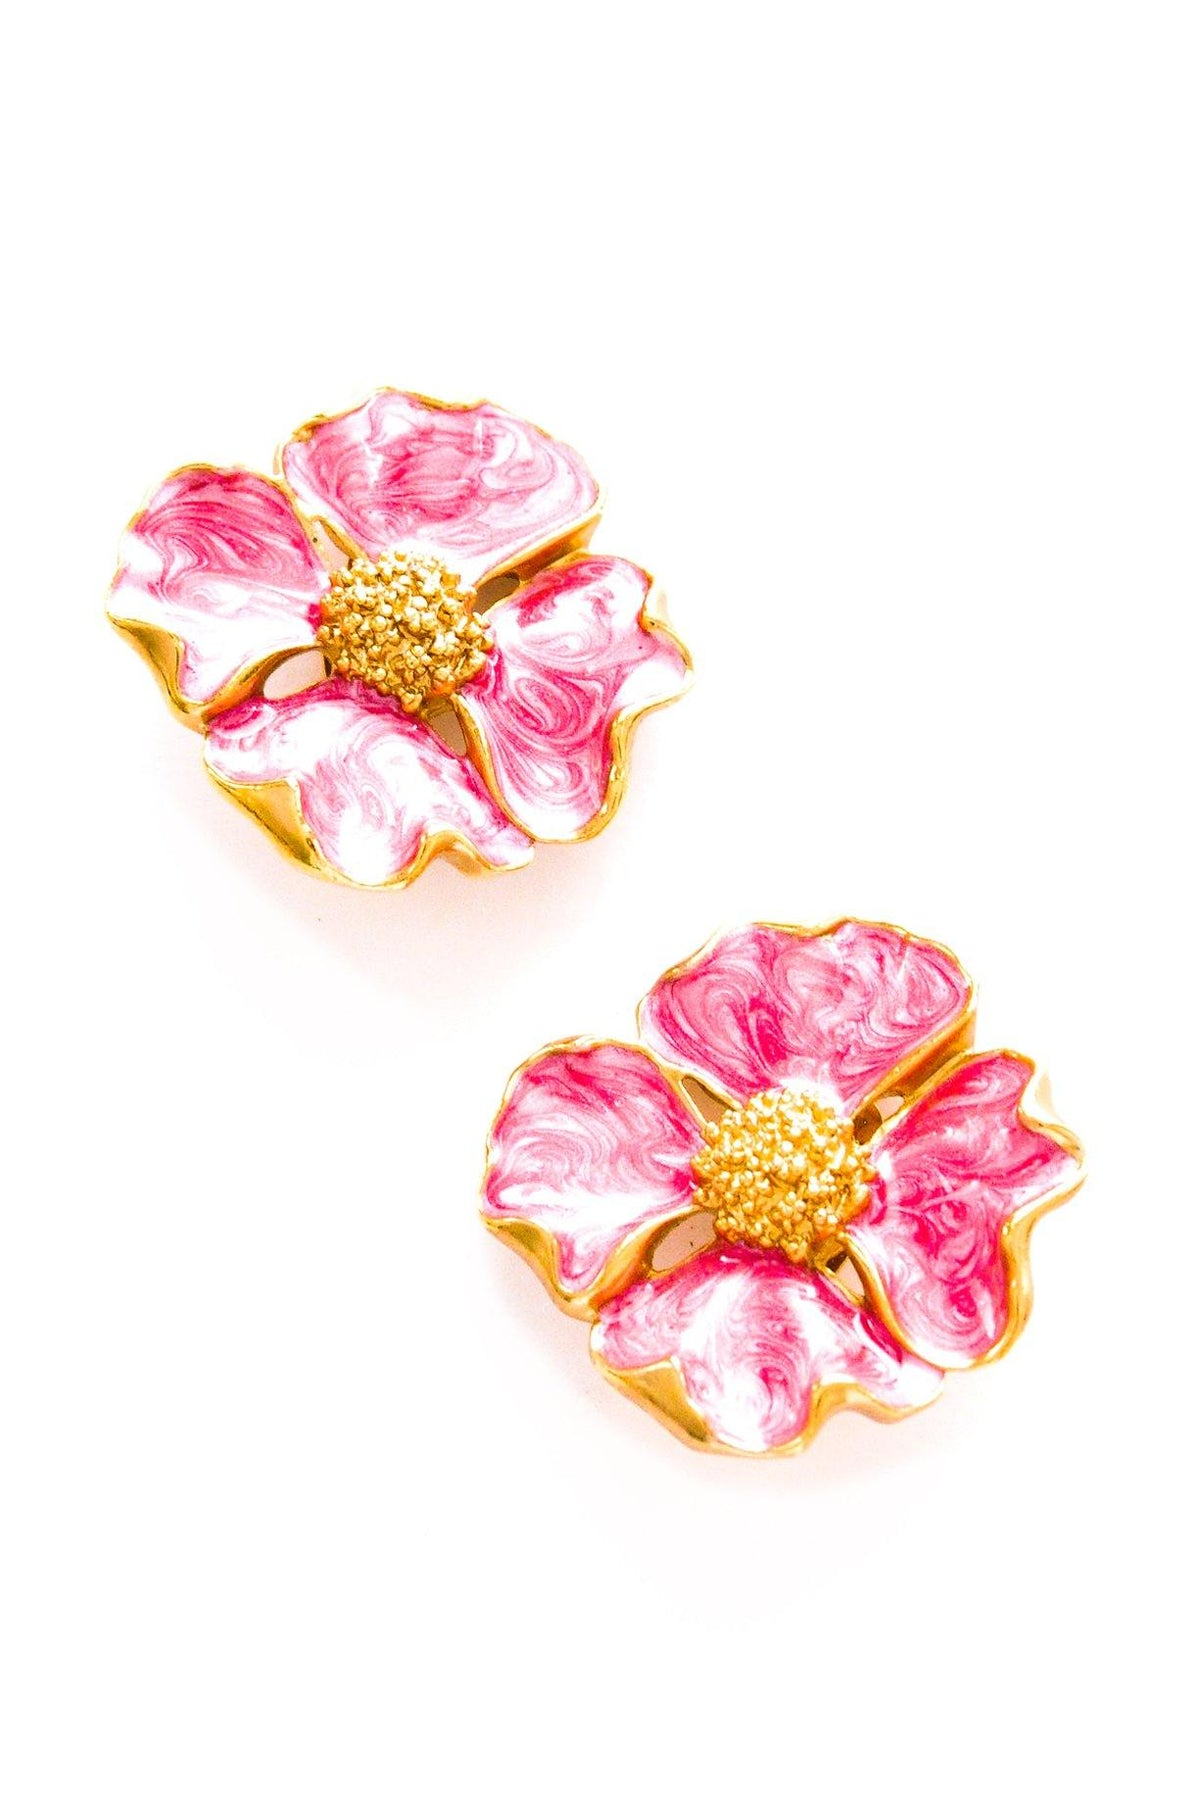 Vintage pink floral statement earrings from Sweet & Spark.